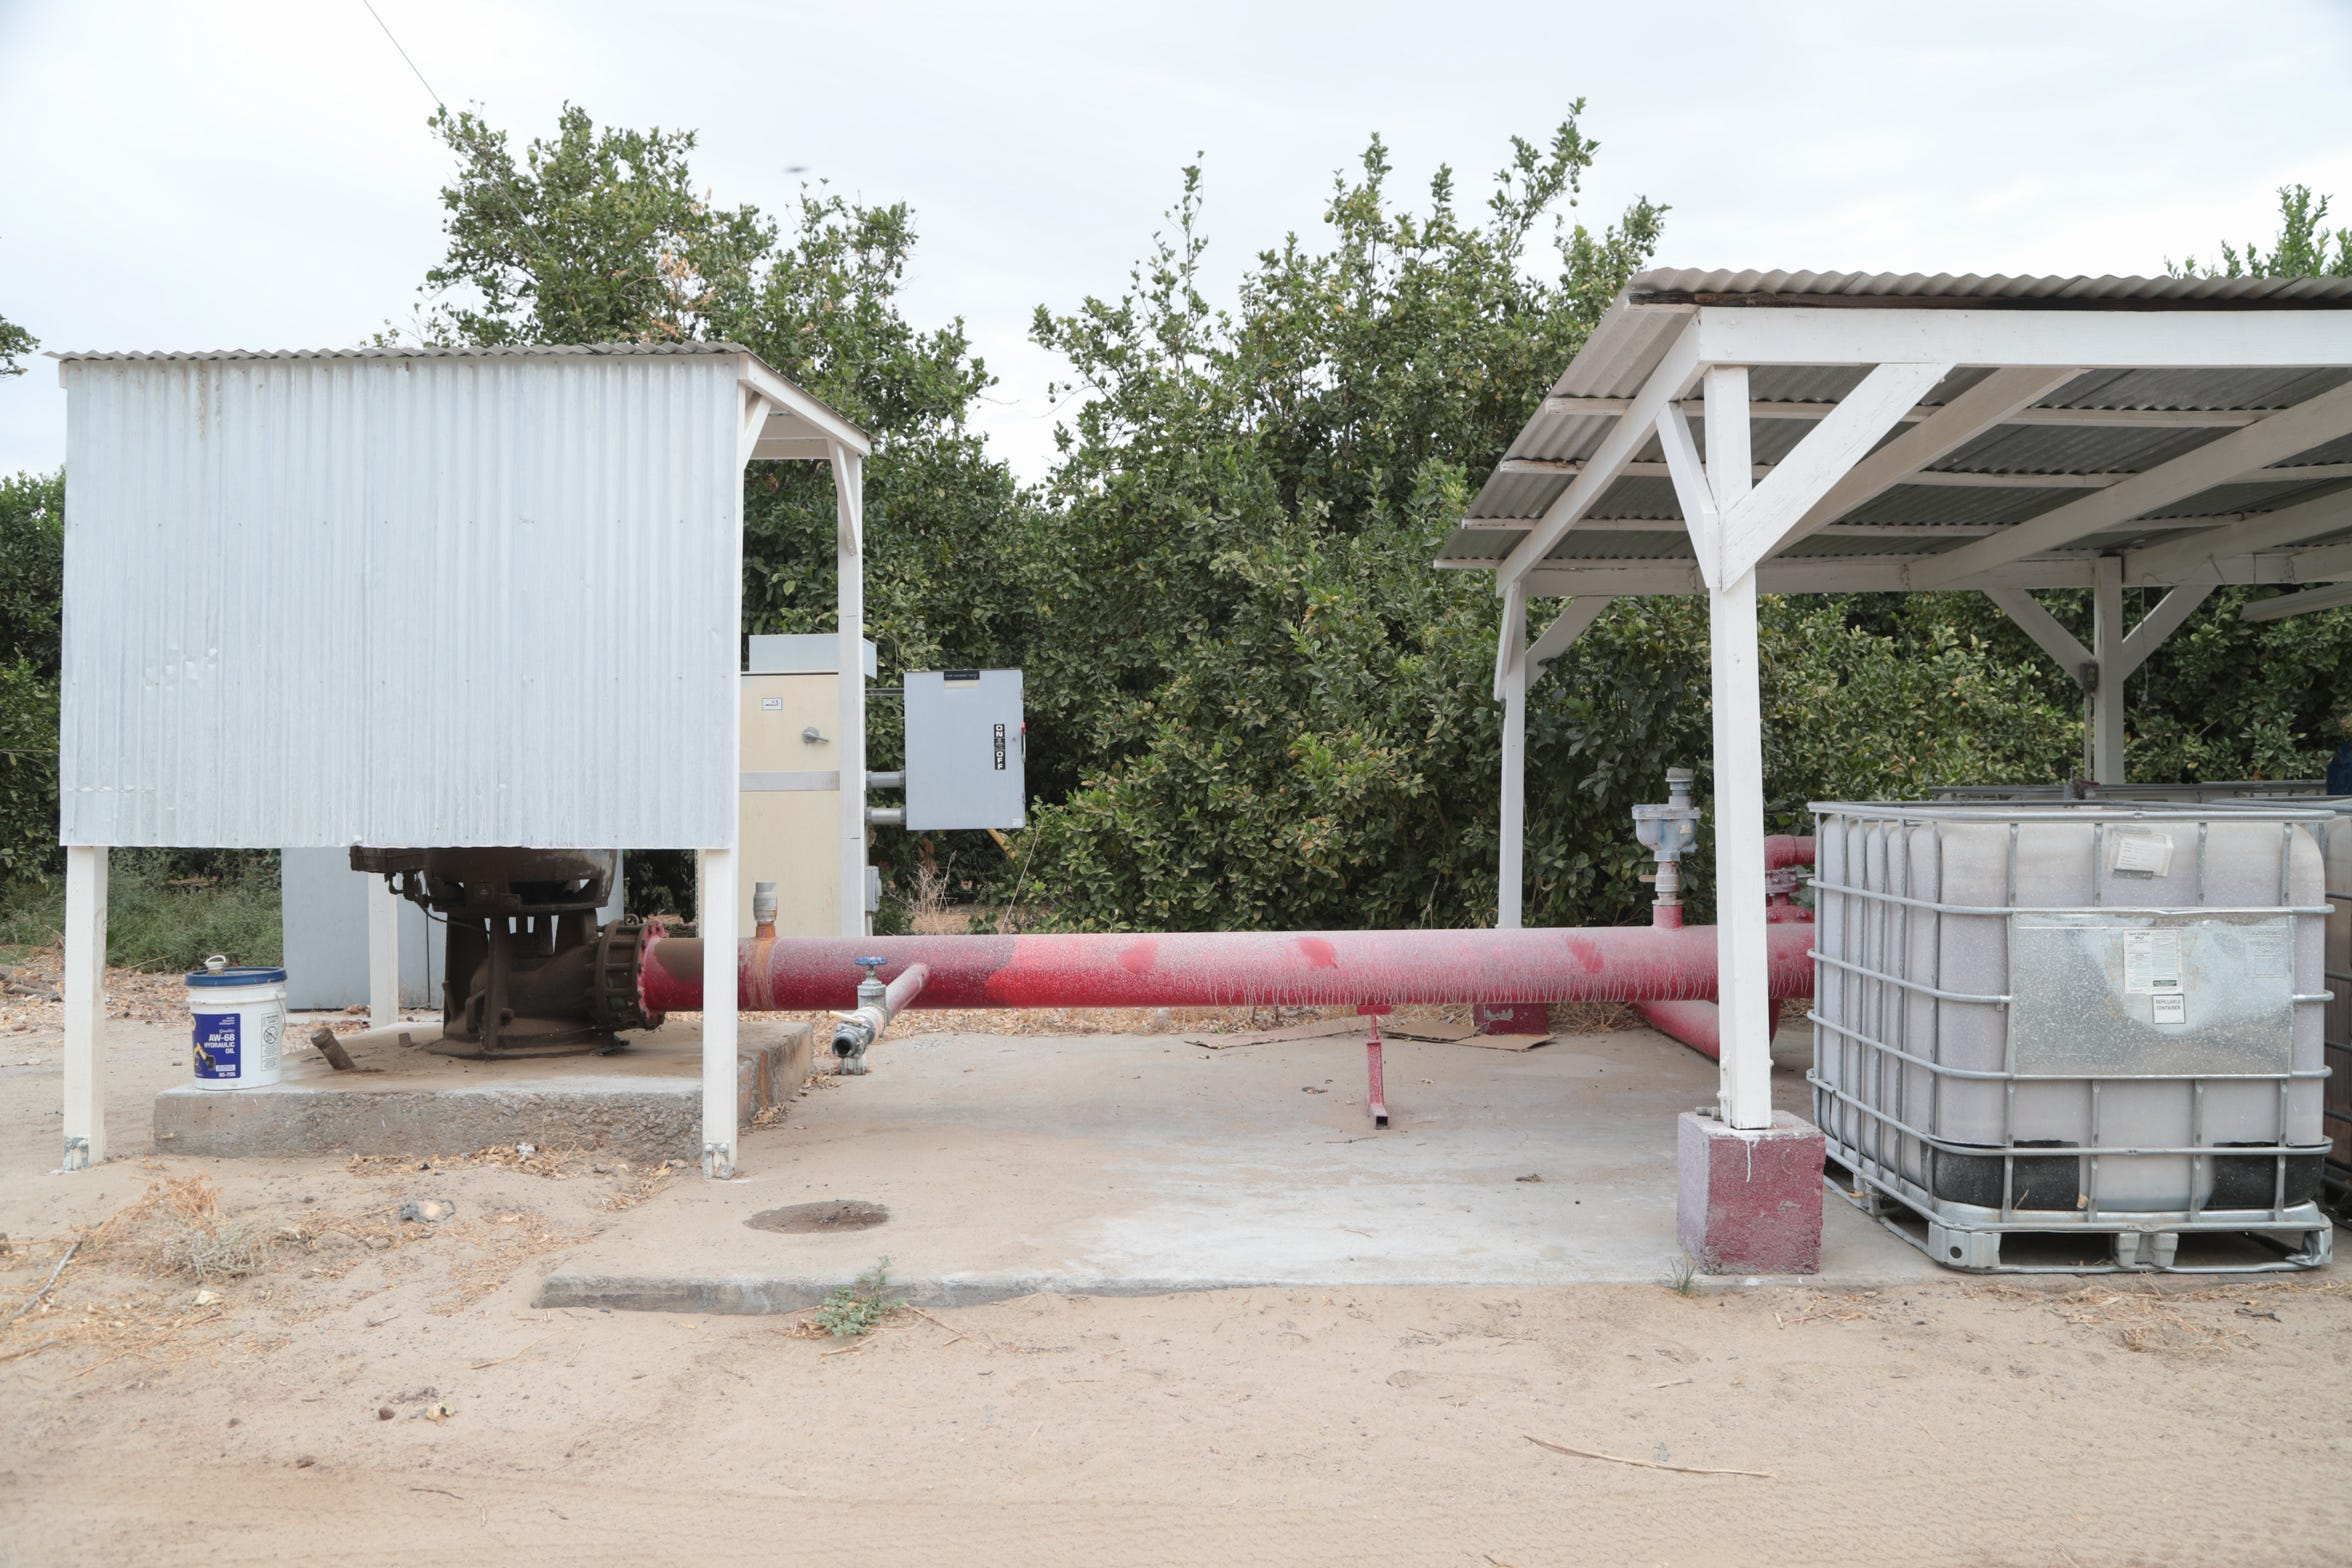 A well supplies water for the citrus groves at Seley Ranches. As the community of Borrego Springs implements a new groundwater management plan, the farm will be required to reduce pumping.